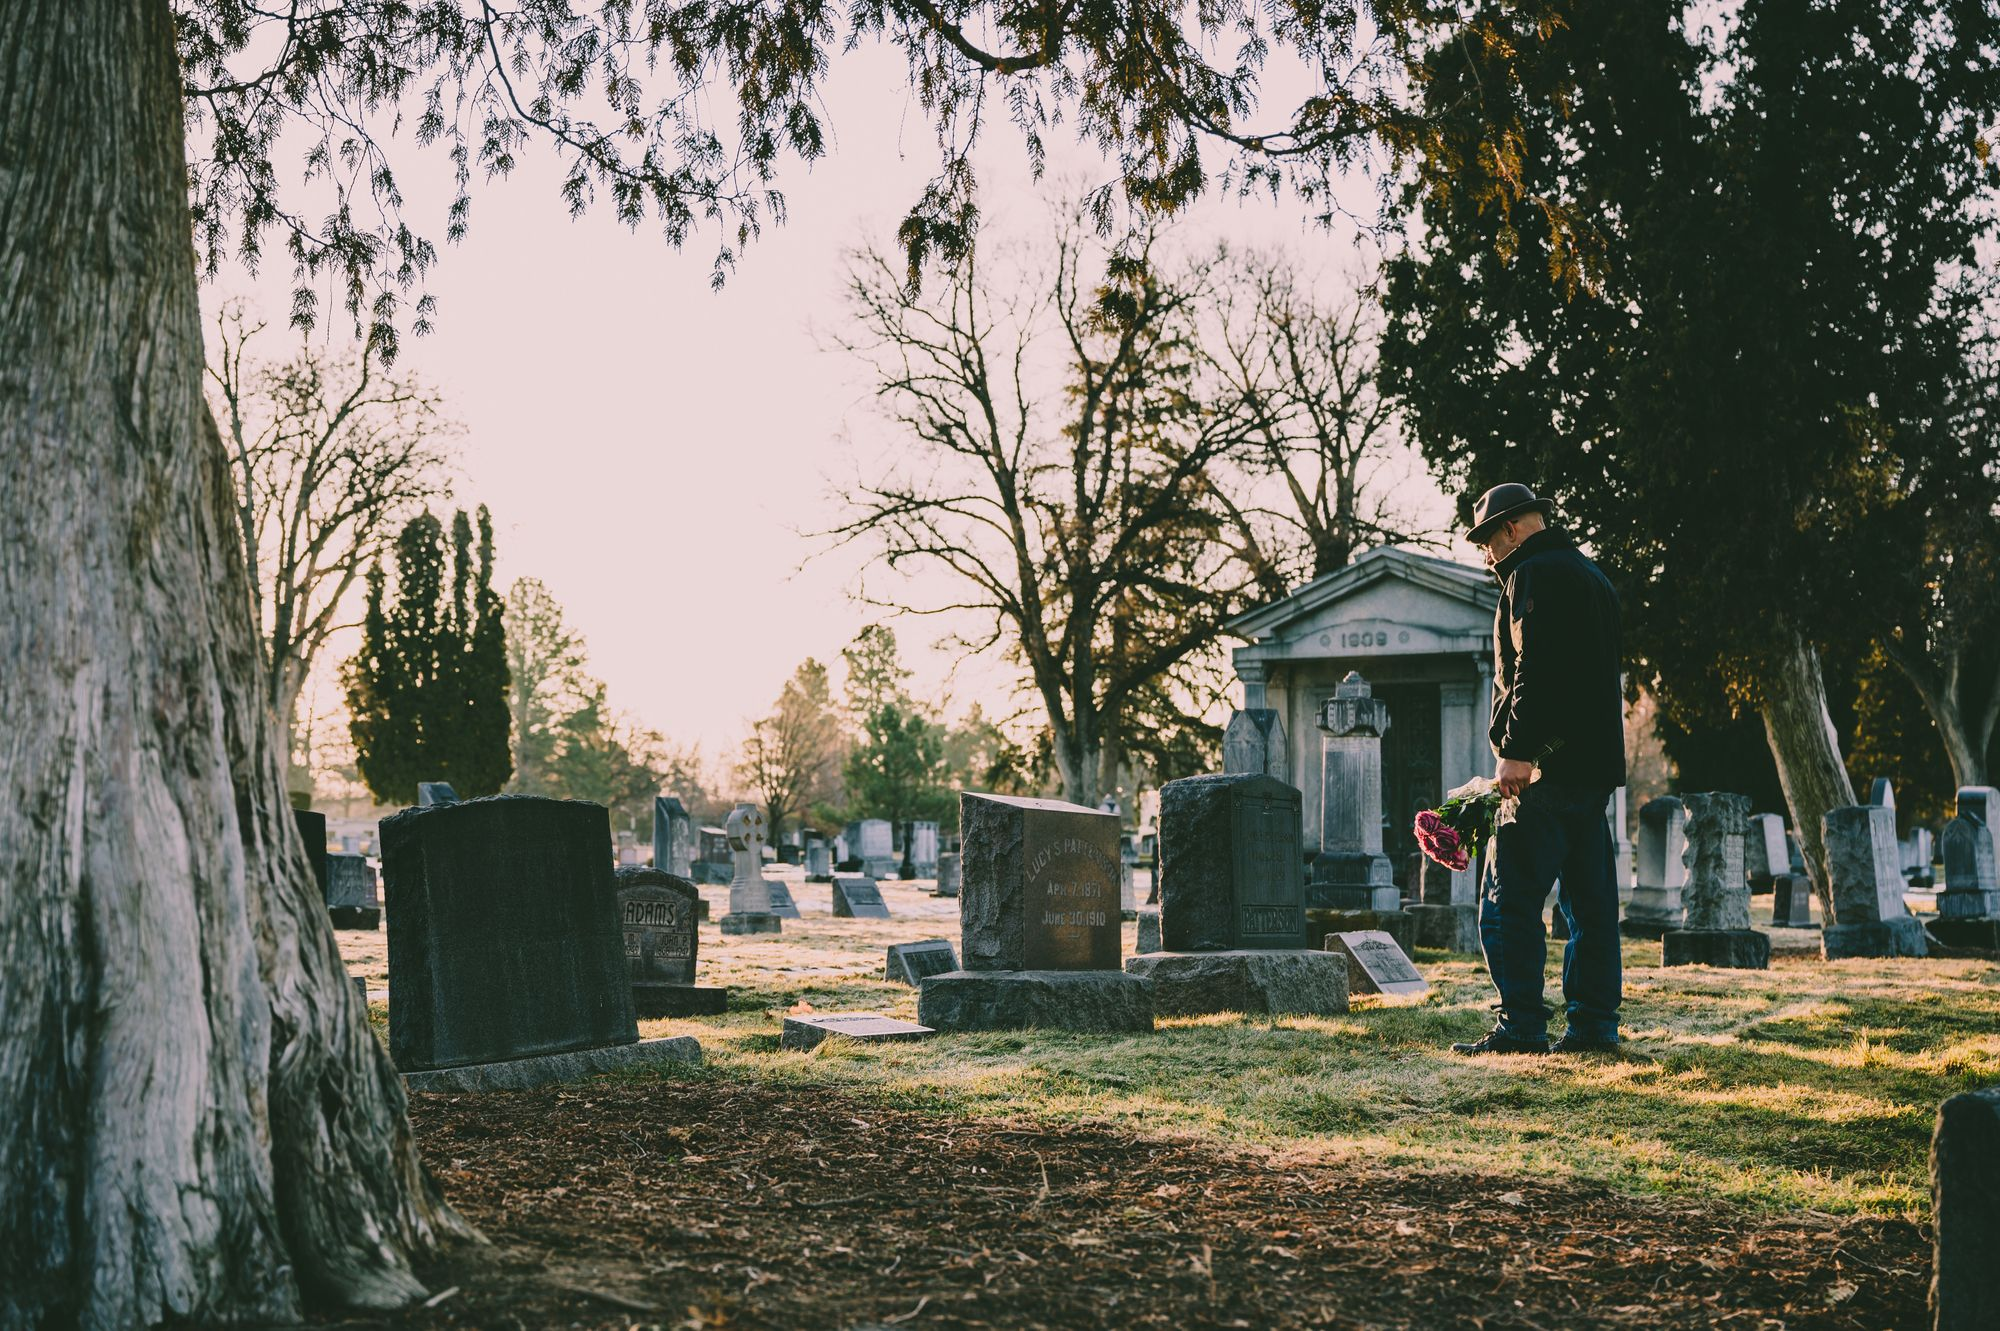 Funeral and Memorial Etiquette Tips for Wakes, Viewings and Visitations